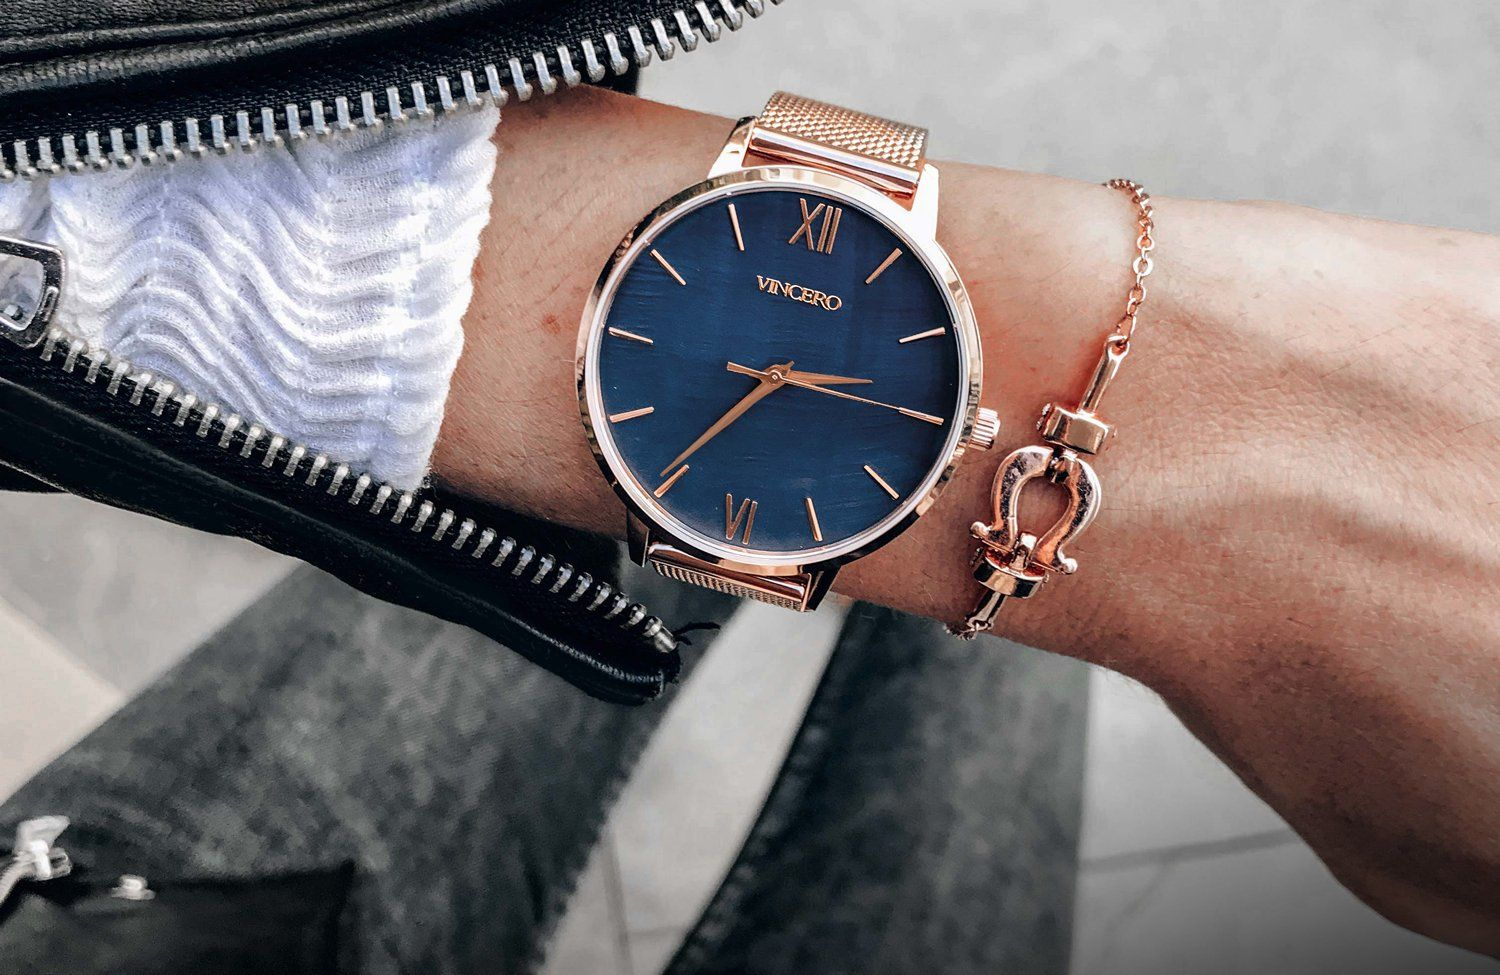 Purchasing a watch for a gift is a fantastic idea